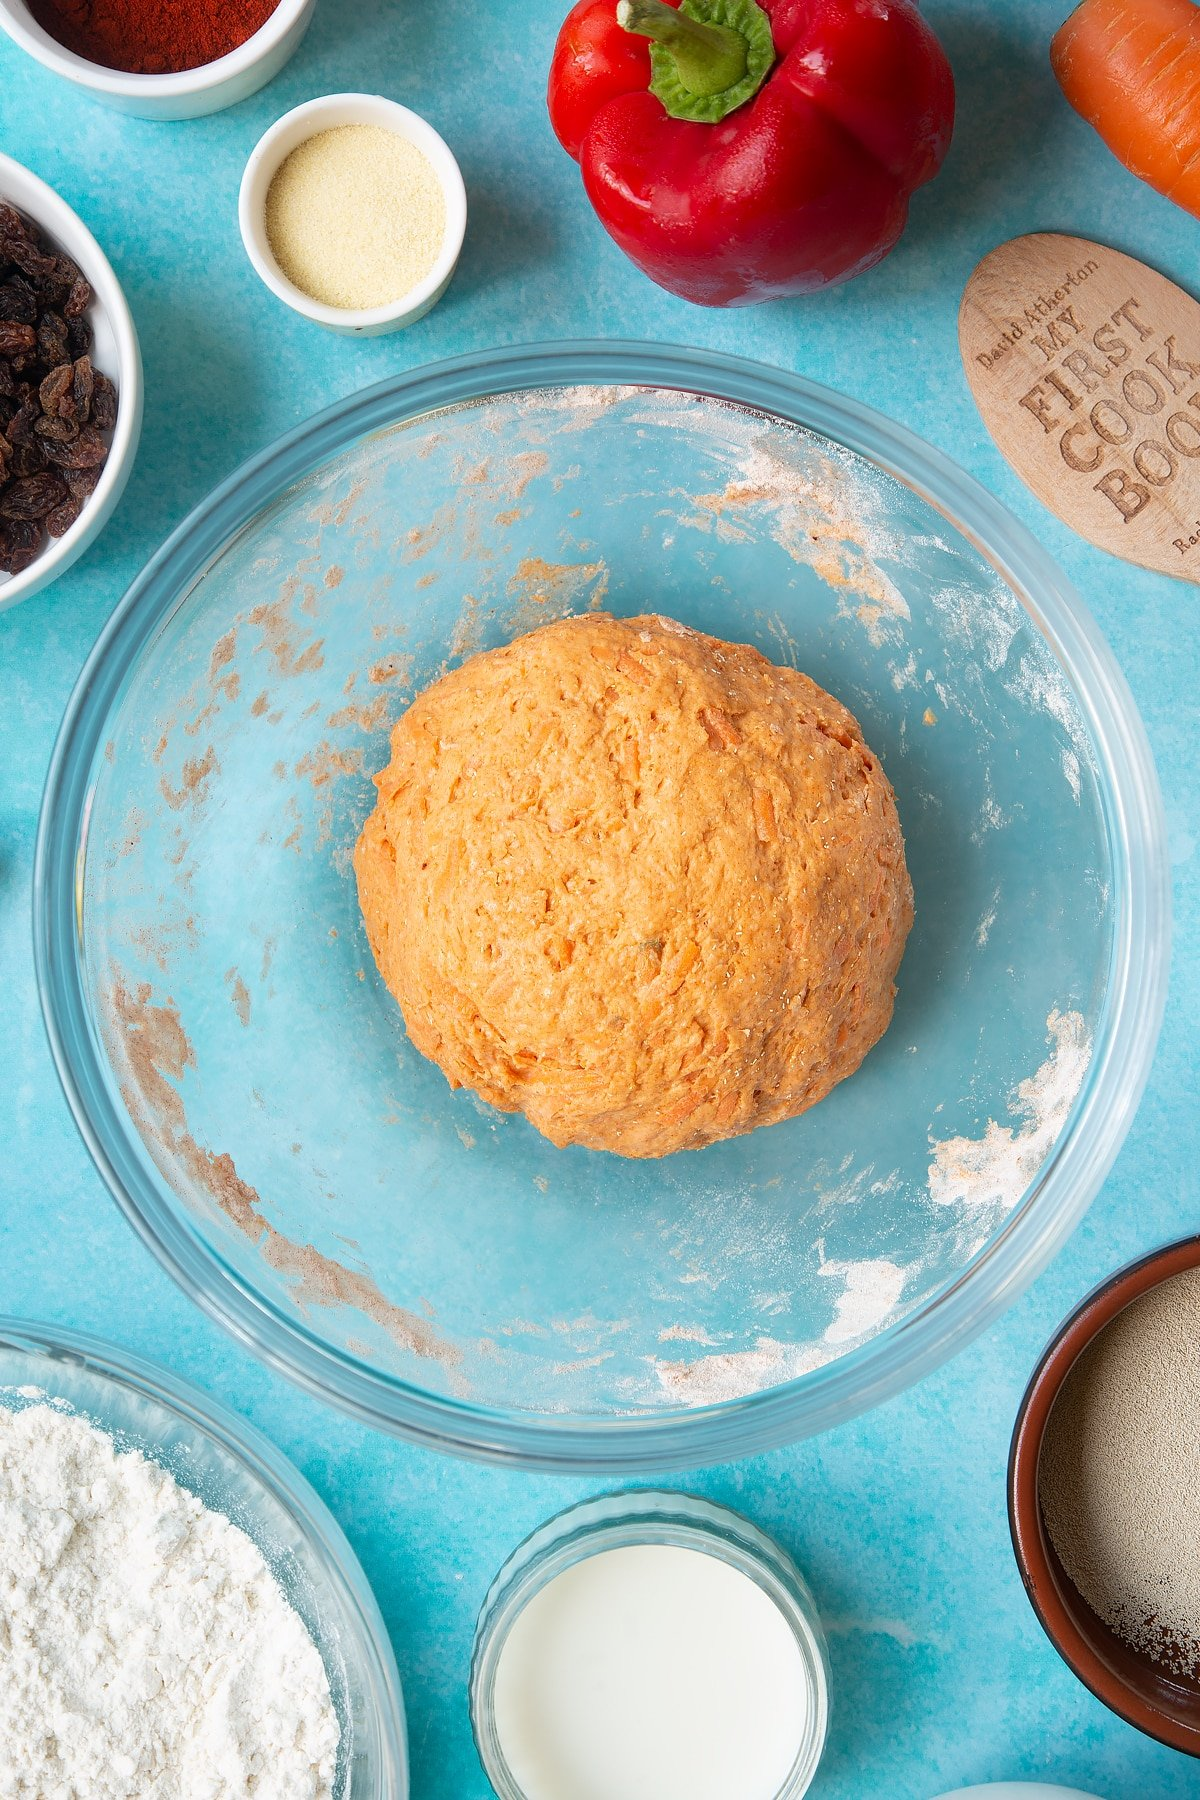 Paprika and carrot bread dough, slightly proved in a mixing bowl. Ingredients to make bread snakes surround the bowl.